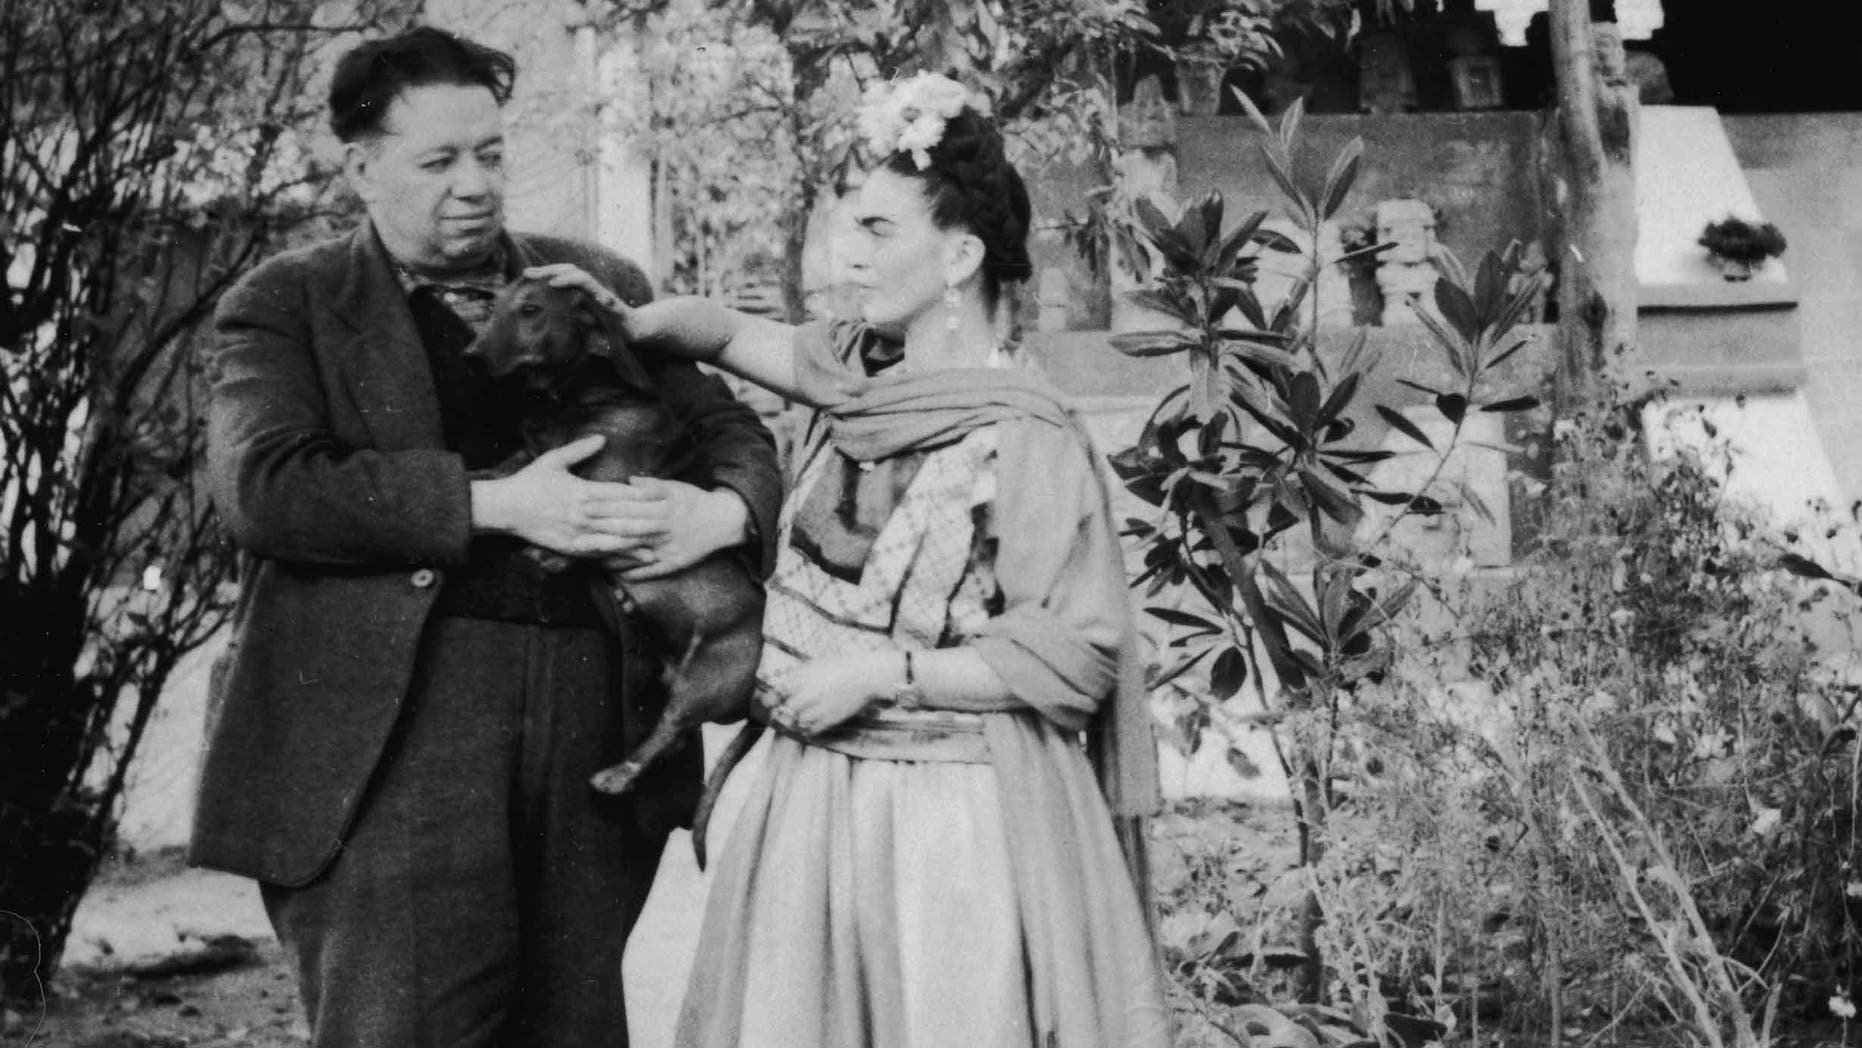 Frida Kahlo and Diego Rivera with a pet dog in Mexico City, Mexico, 1940s.